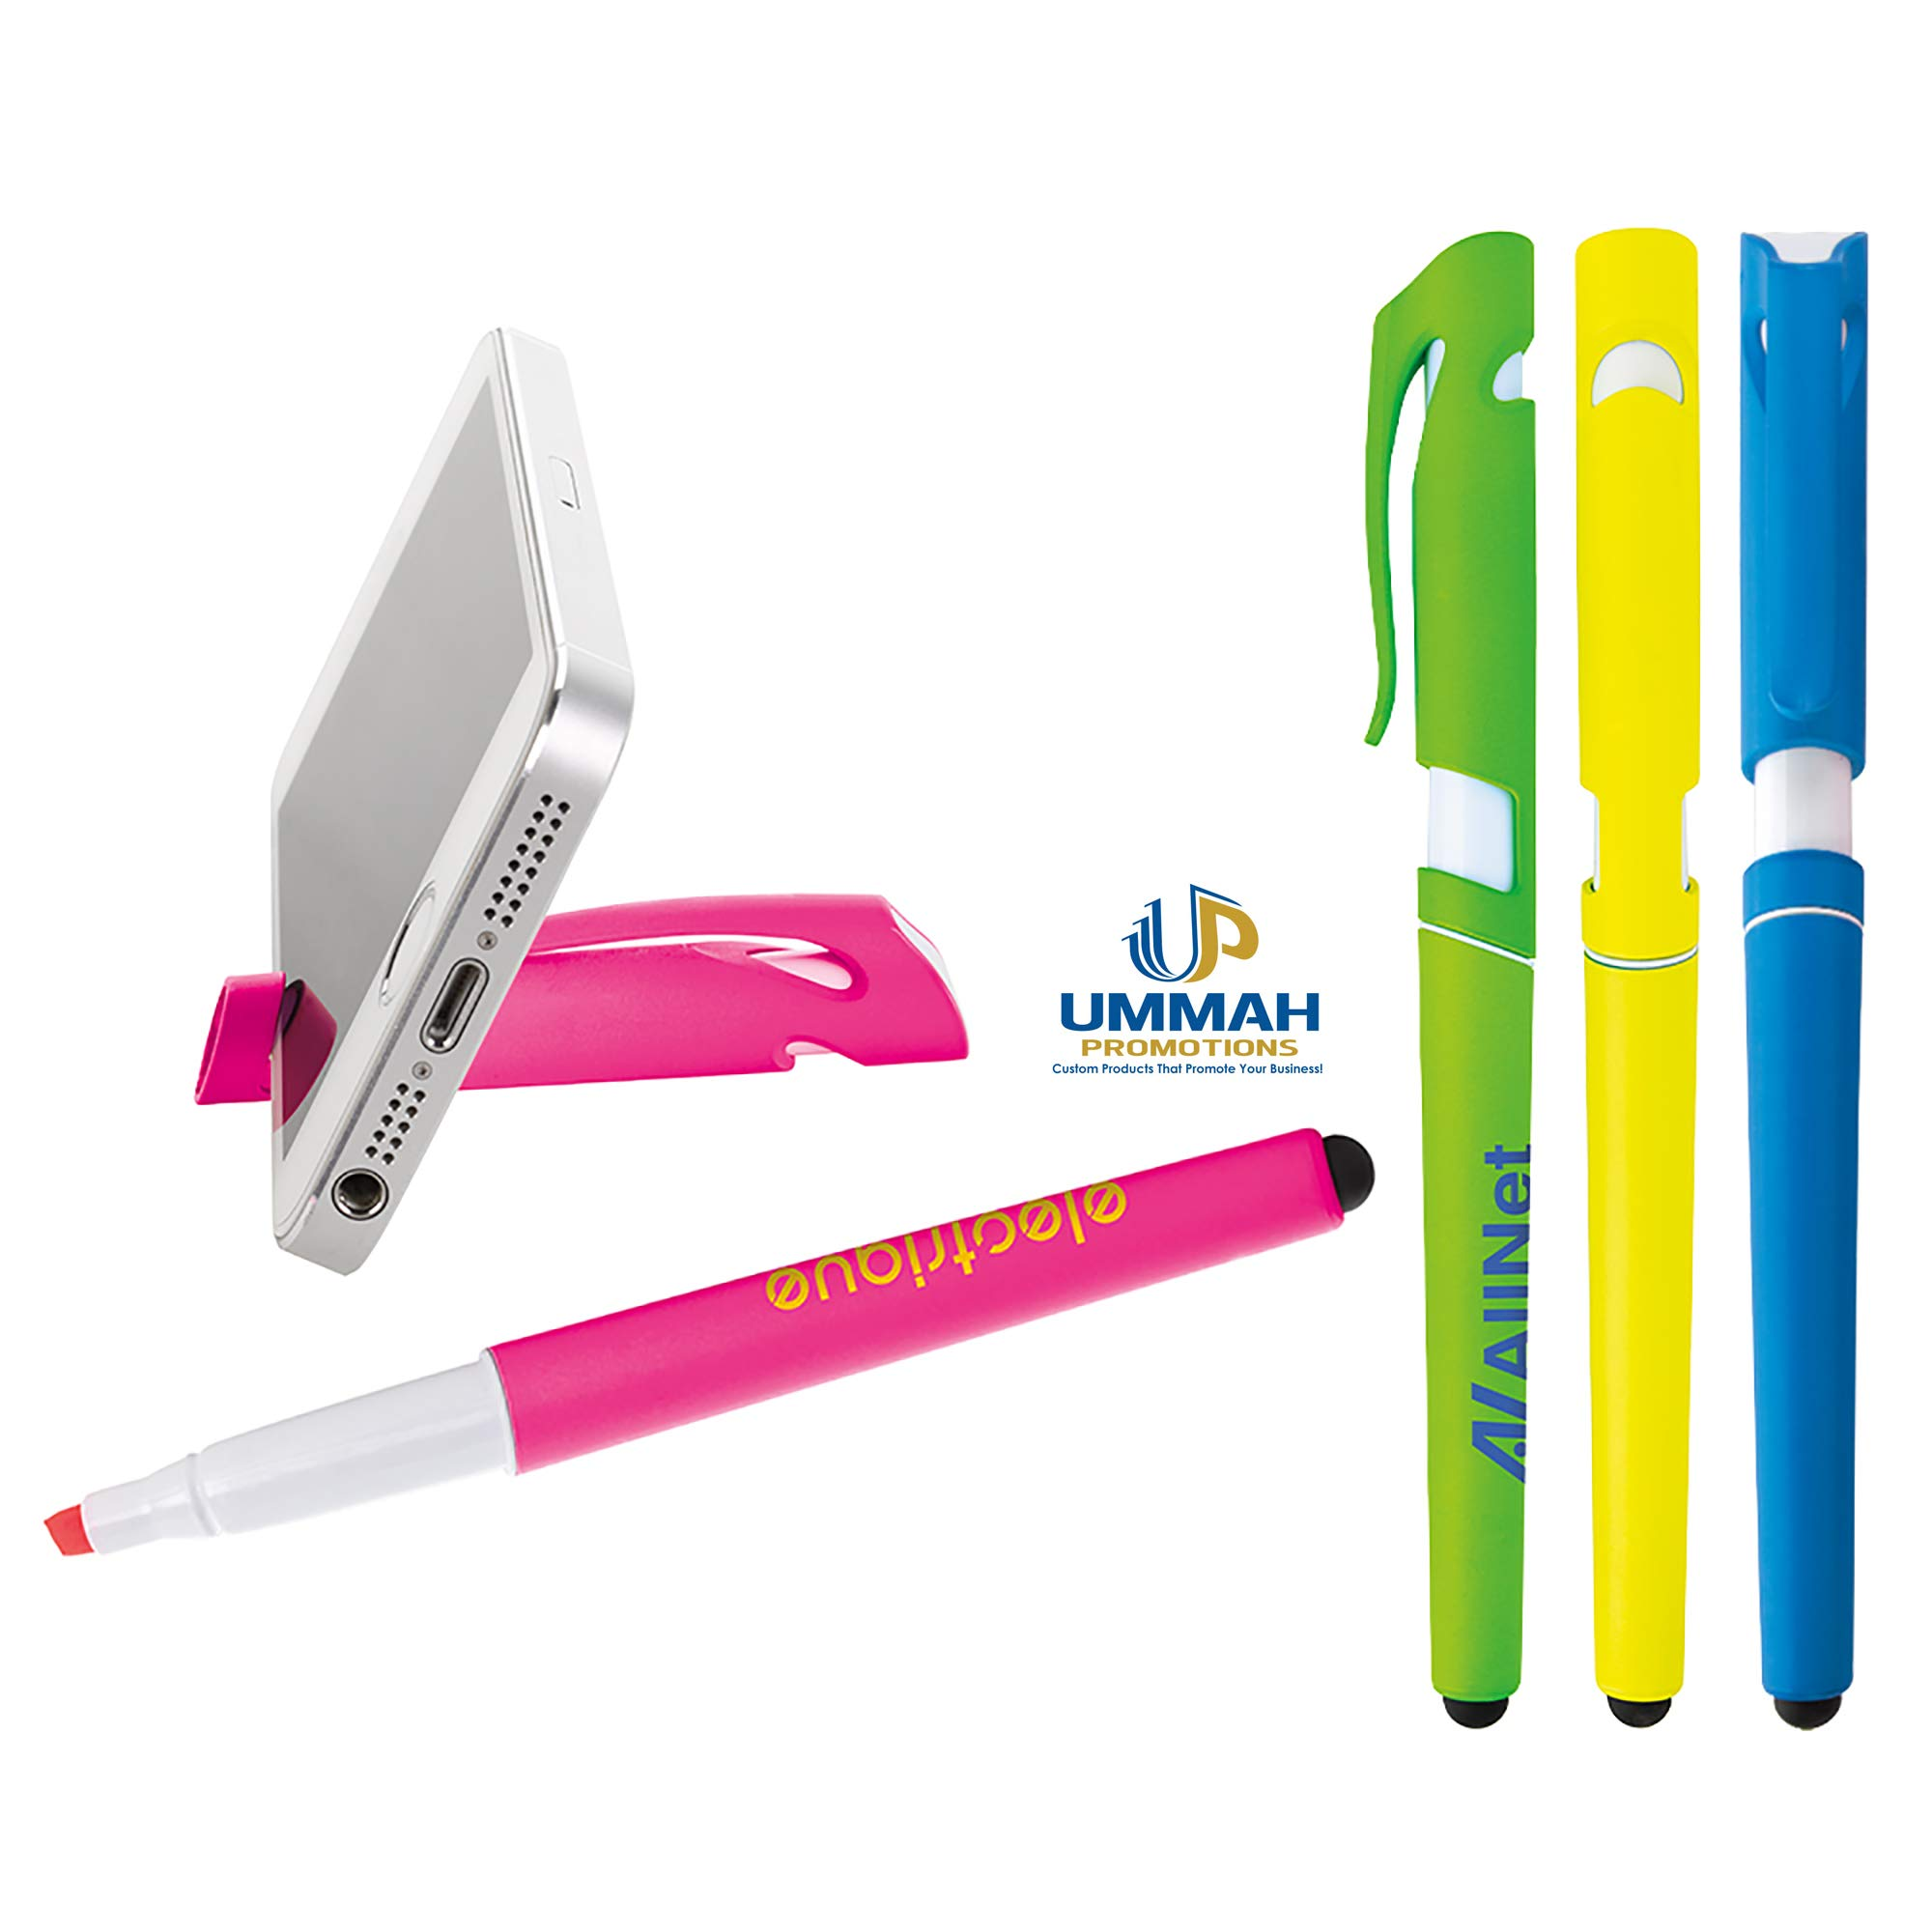 250 Personalized Multi Tech Highlighter Printed with Your Company/School Logo or Message by Ummah Promotions (Image #1)